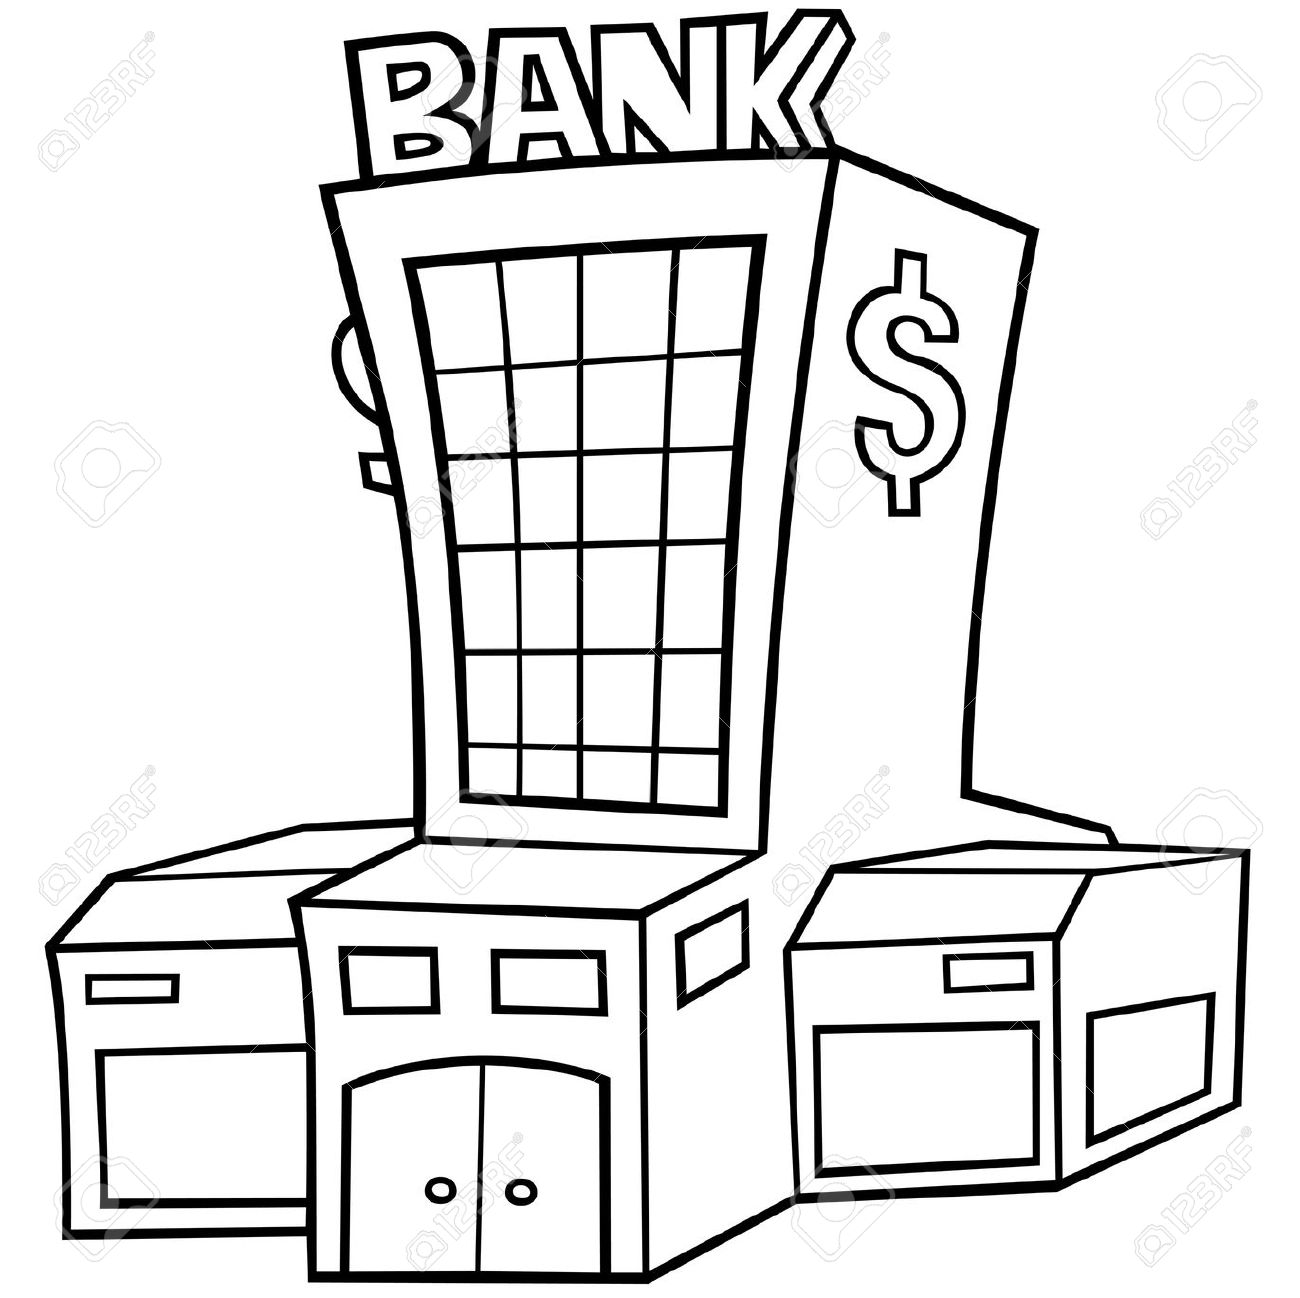 Bank Clipart Black And White Bank Black And White Transparent Free For Download On Webstockreview 2020